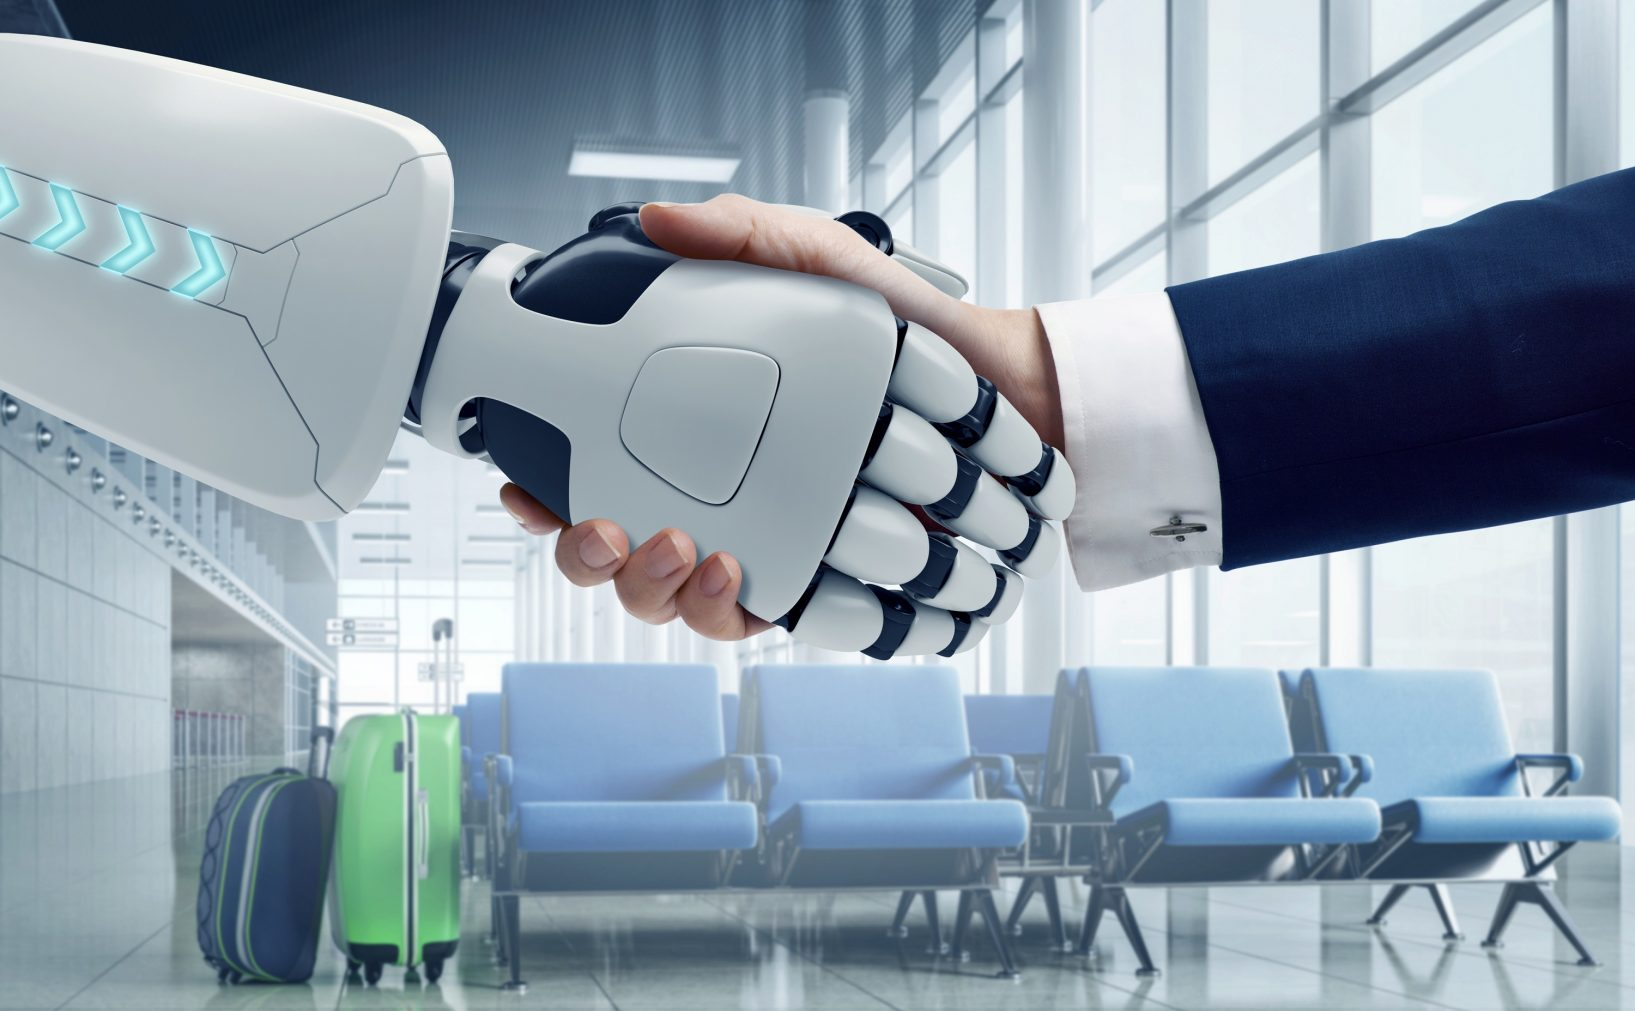 Artificial Intelligence Is Helping Airports Cut Baggage Mishandling Costs From $4.22 Billion To $2 Billion